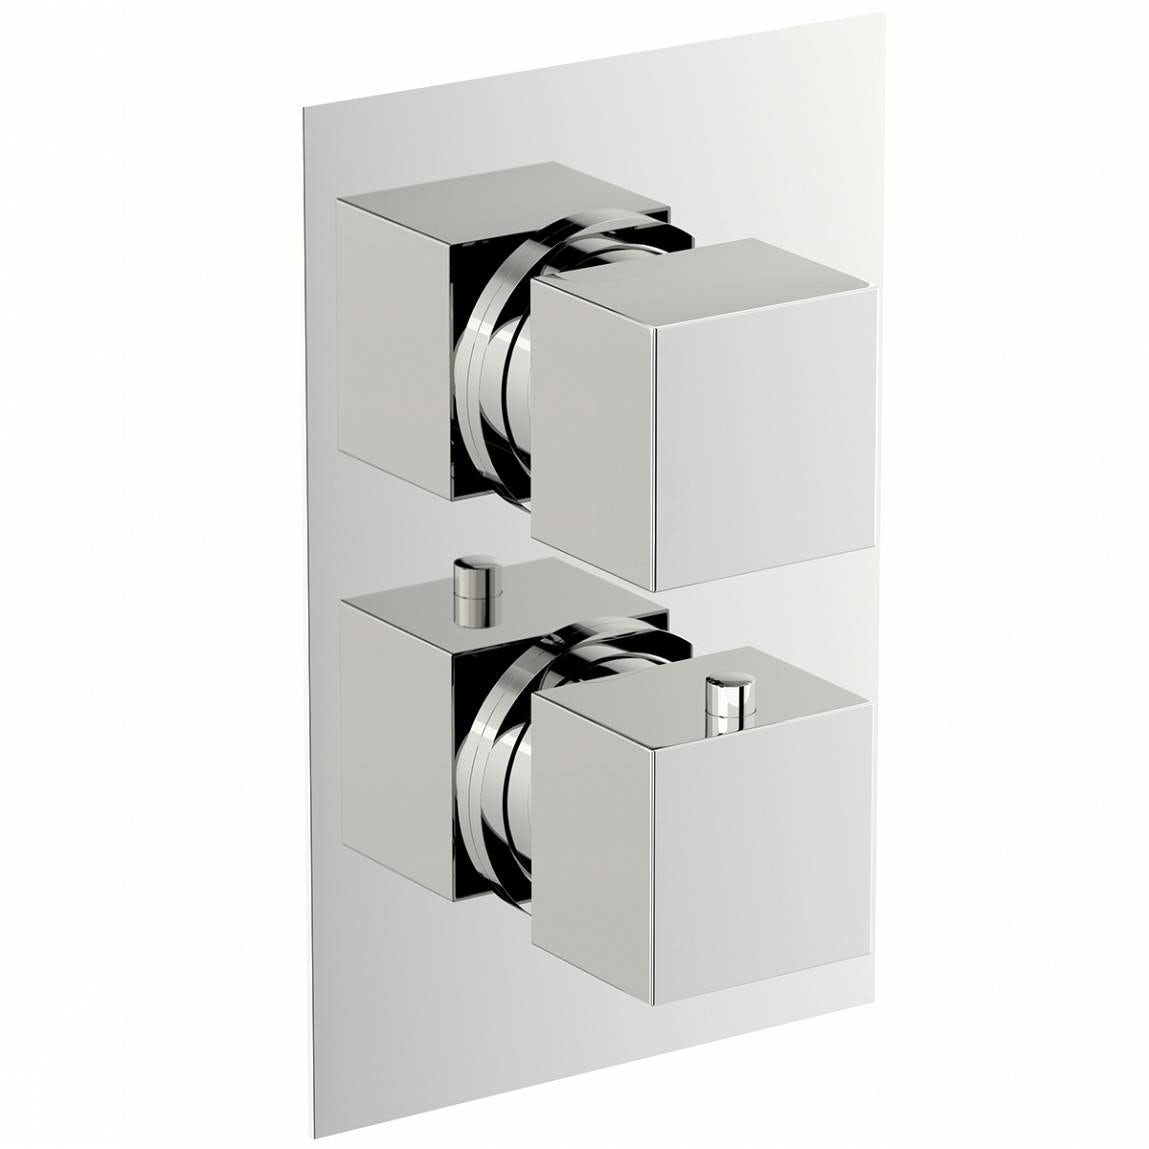 Mode Cubik square twin thermostatic shower valve with diverter